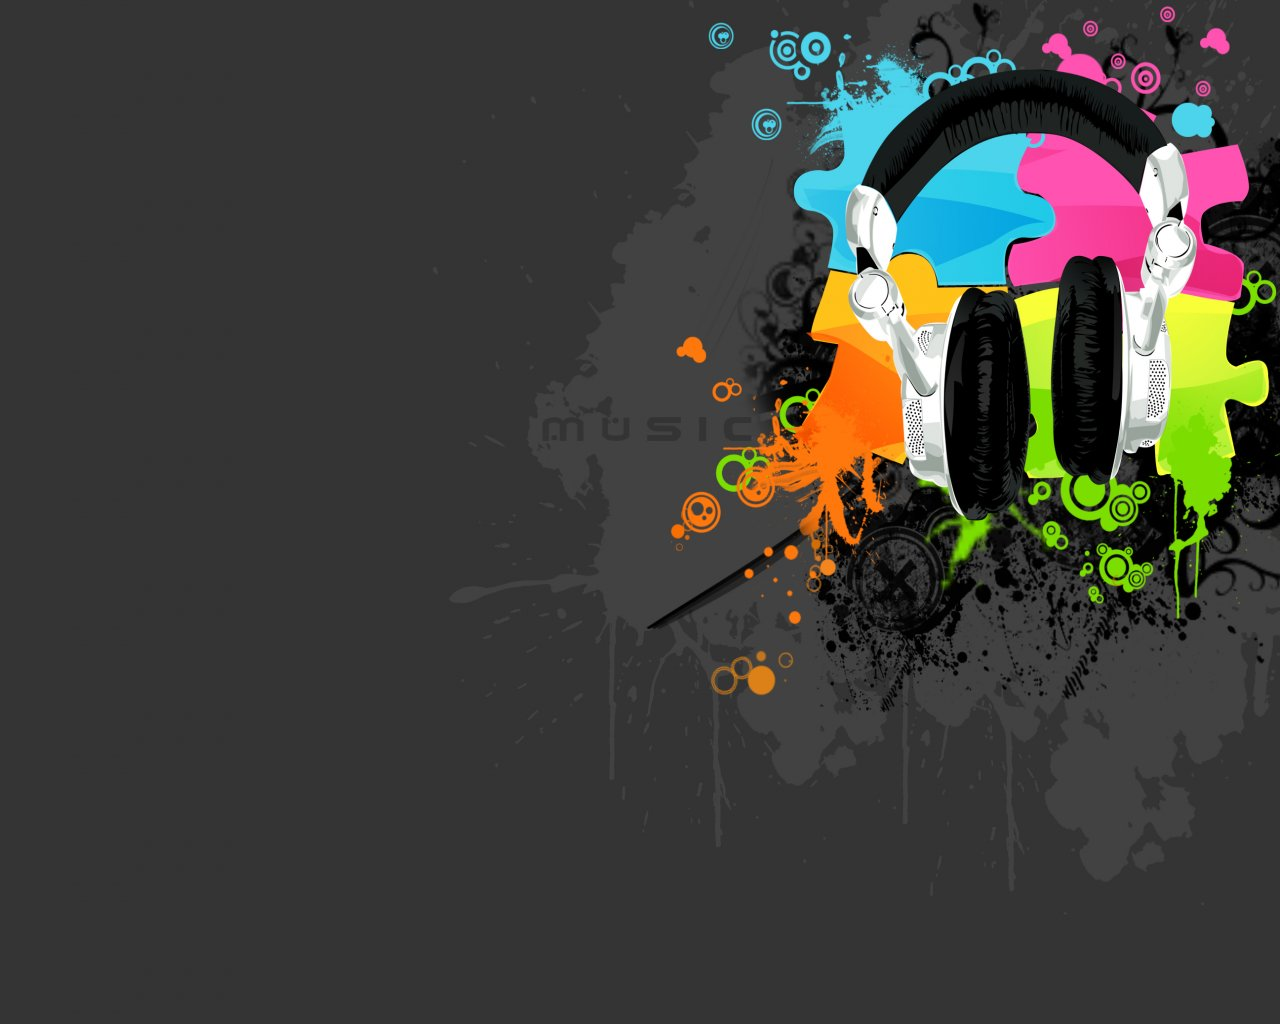 Cool Music Backgrounds Wallpapers « ALL TYPES WALLPAPER